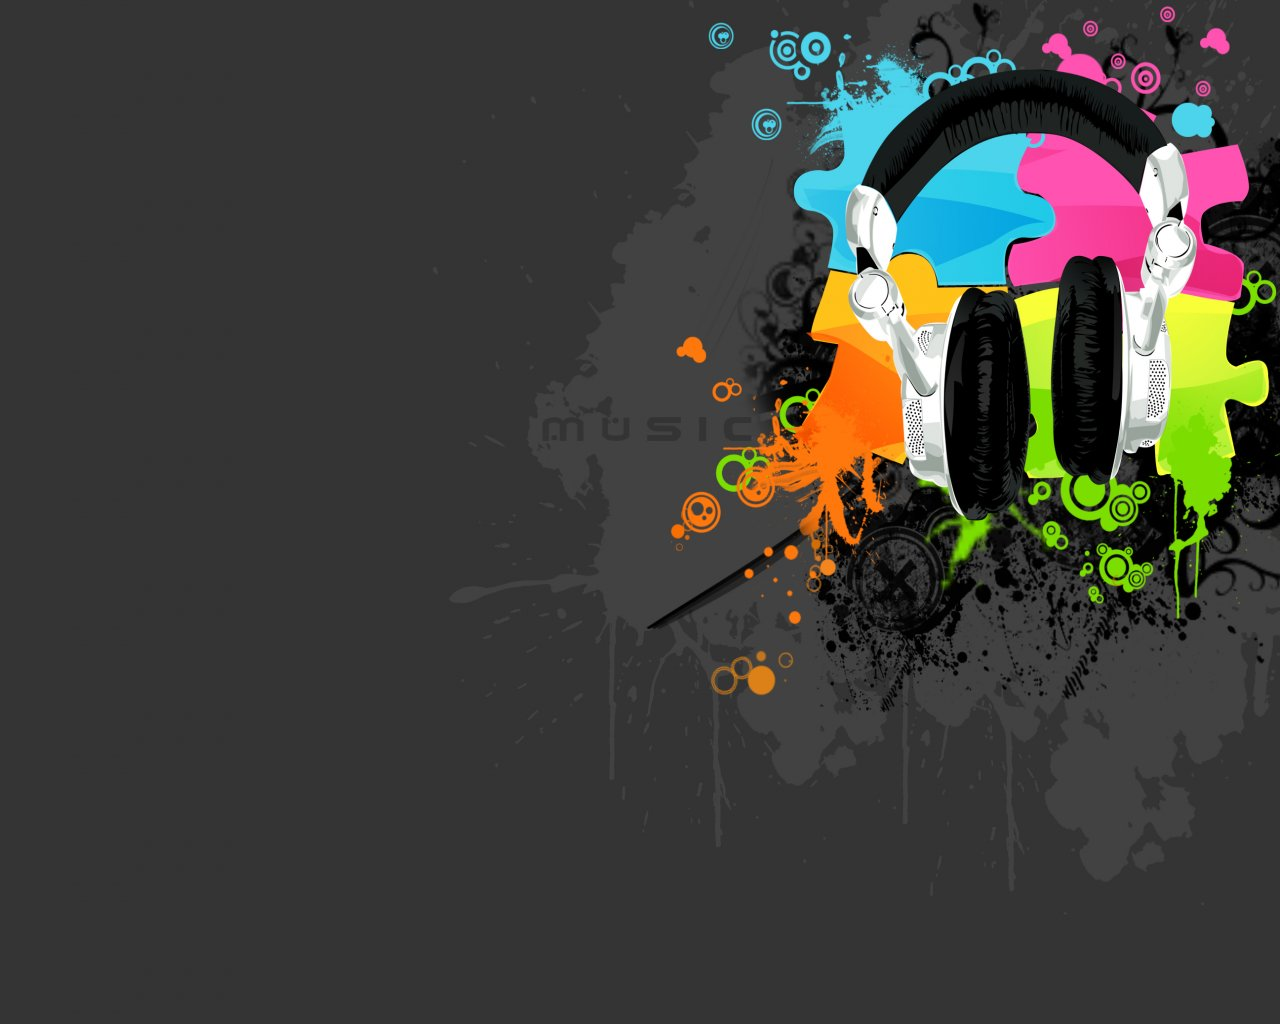 Cool Music Backgrounds Wallpapers « ALL TYPES WALLPAPER